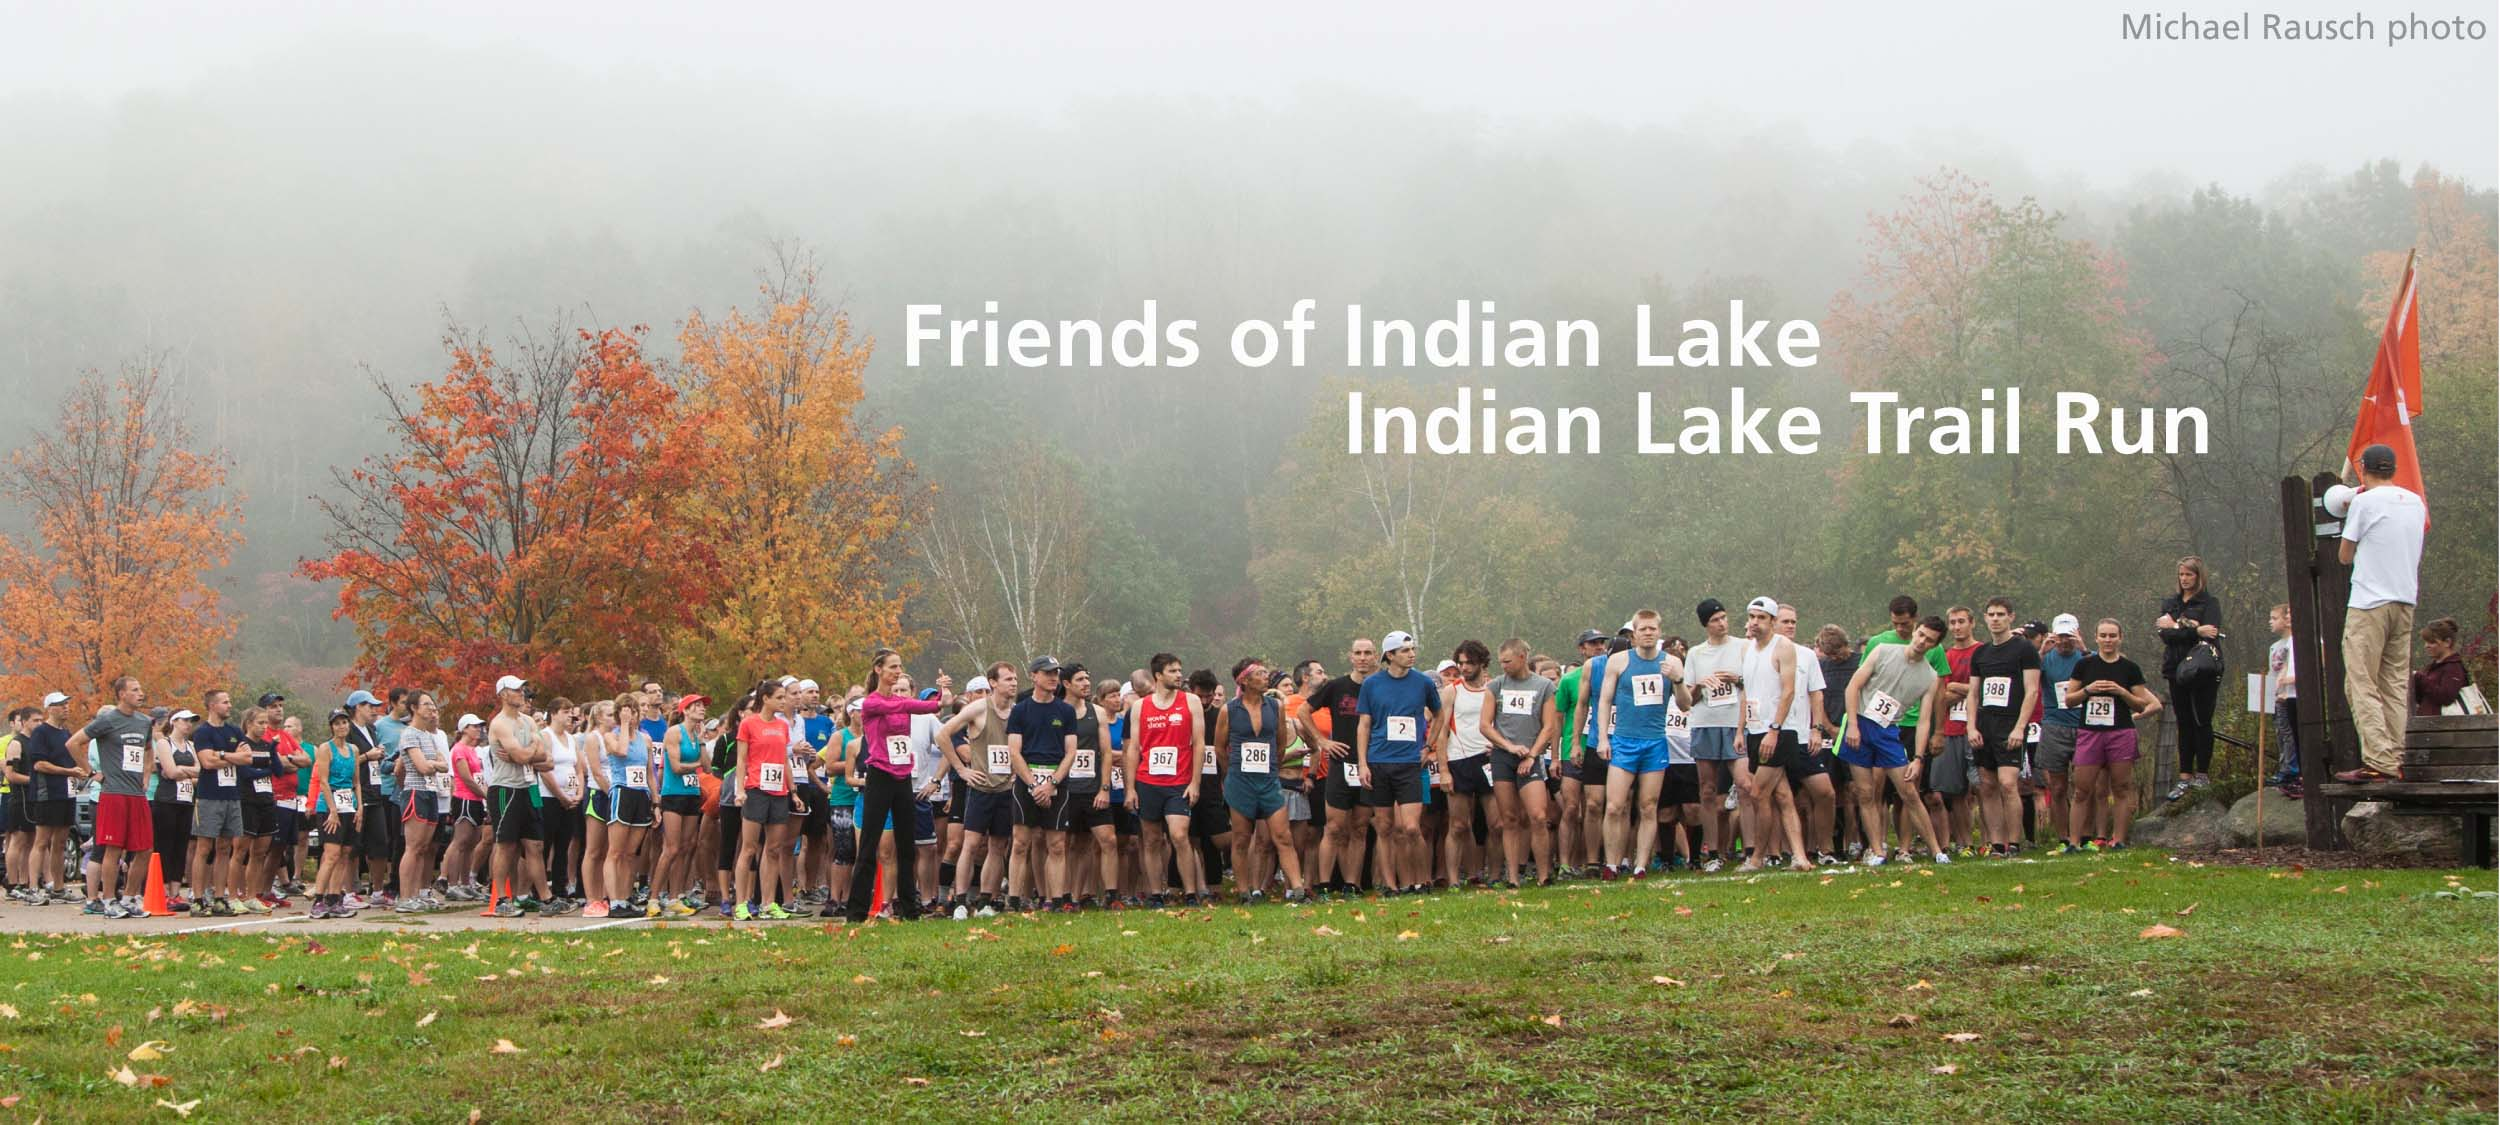 Indian Lake trail run banner